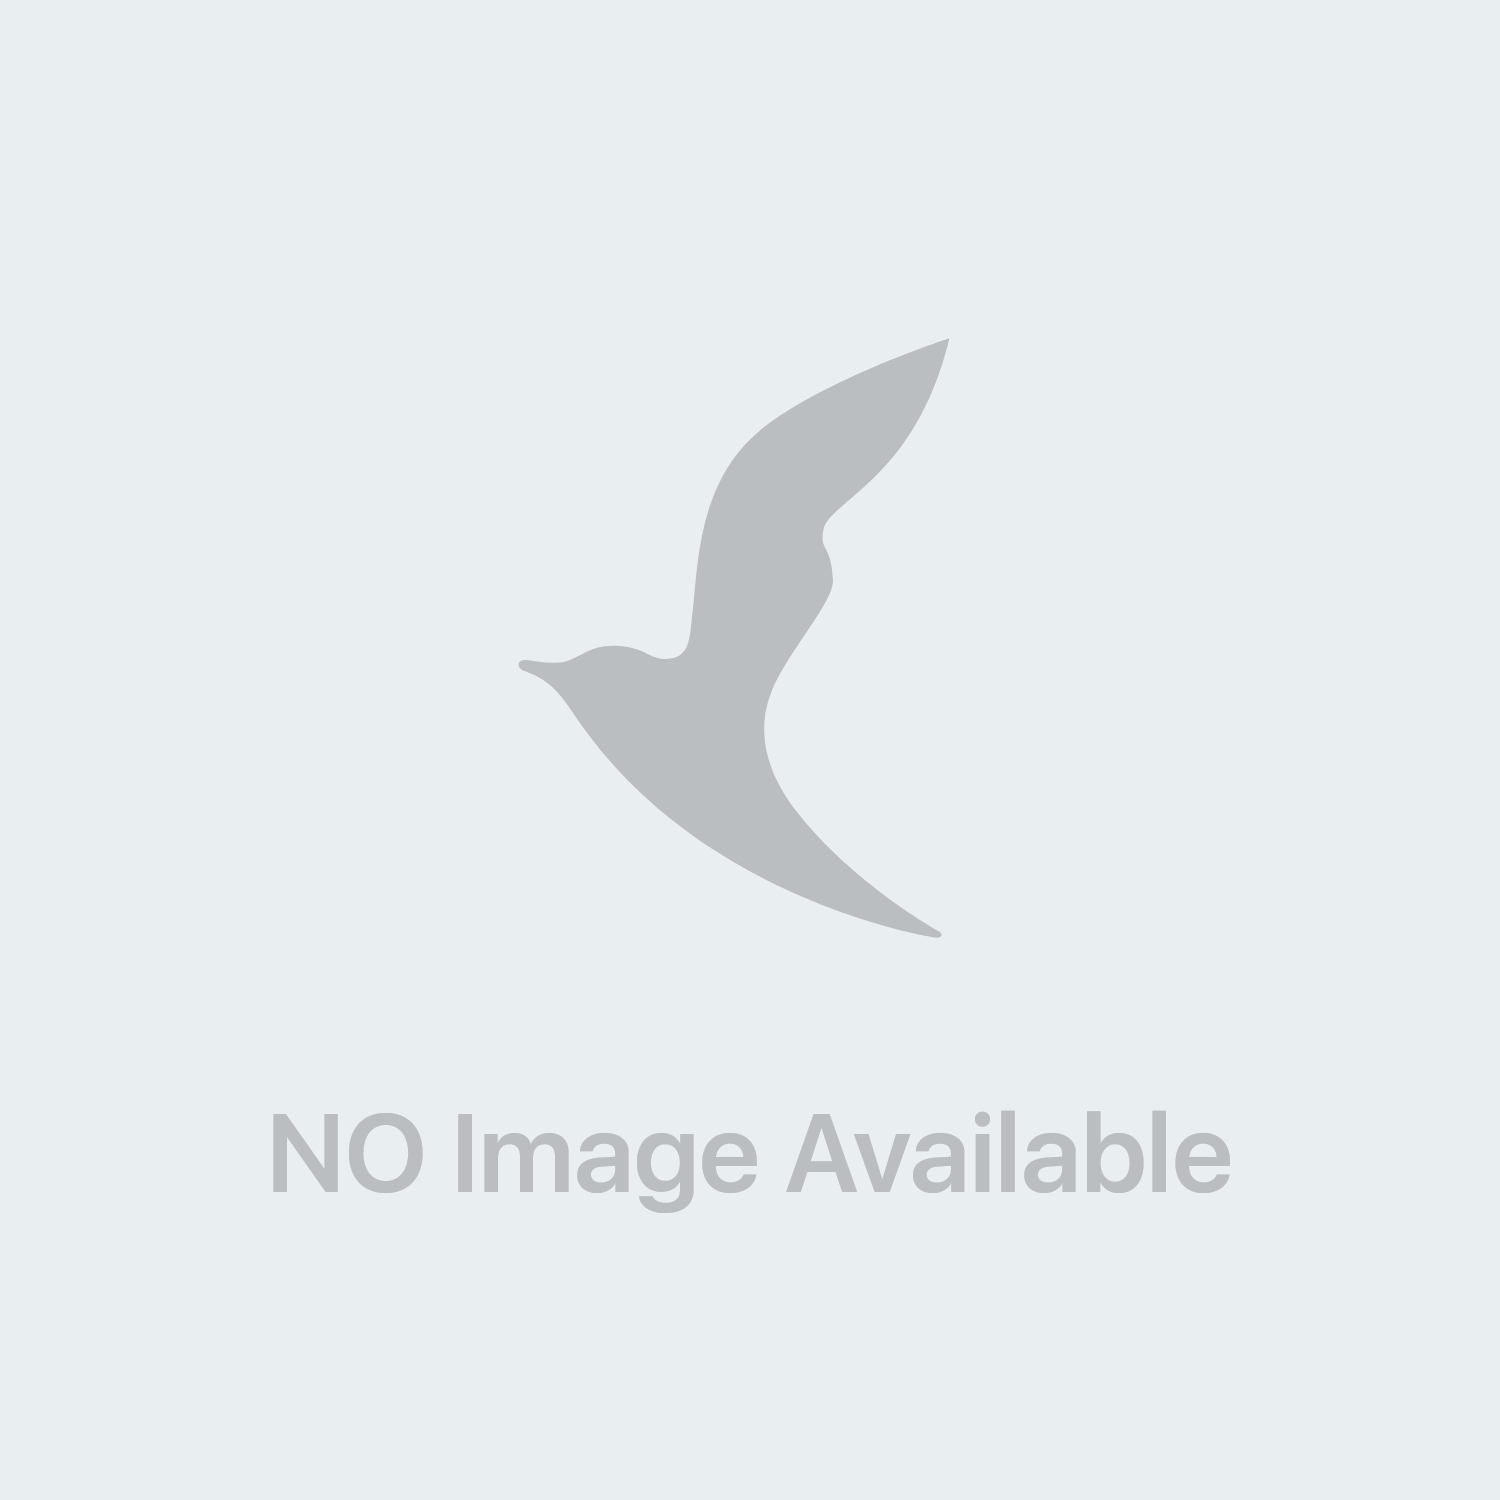 Image of Enervitene Sport Integratore di Carboidrati Limone 1 Cheerpack 60 Ml